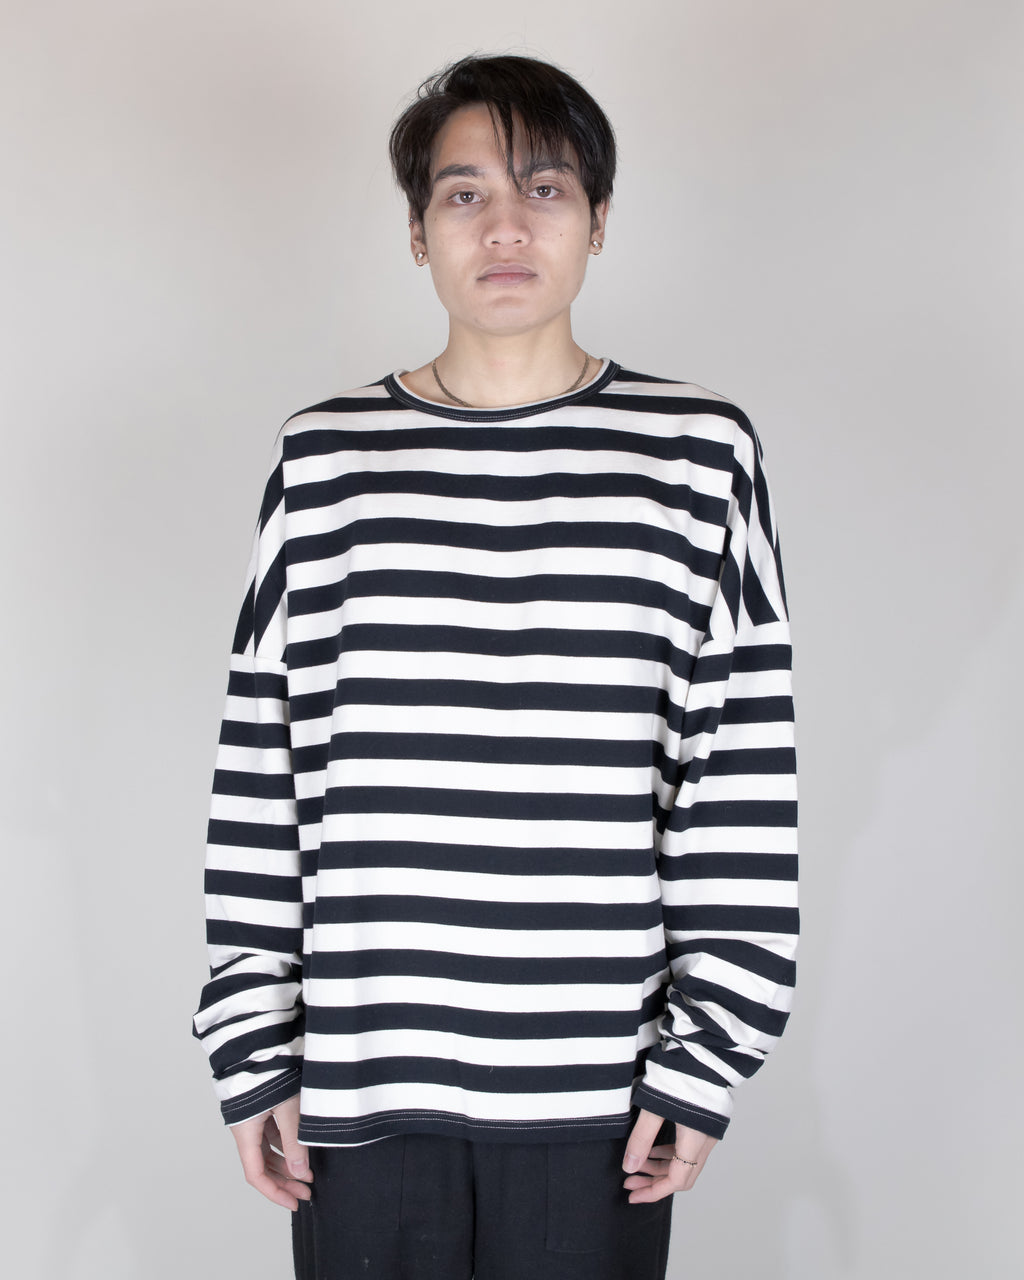 Unnecessary Oversized Multipanel Drop Shoulder Long Sleeve Shirt